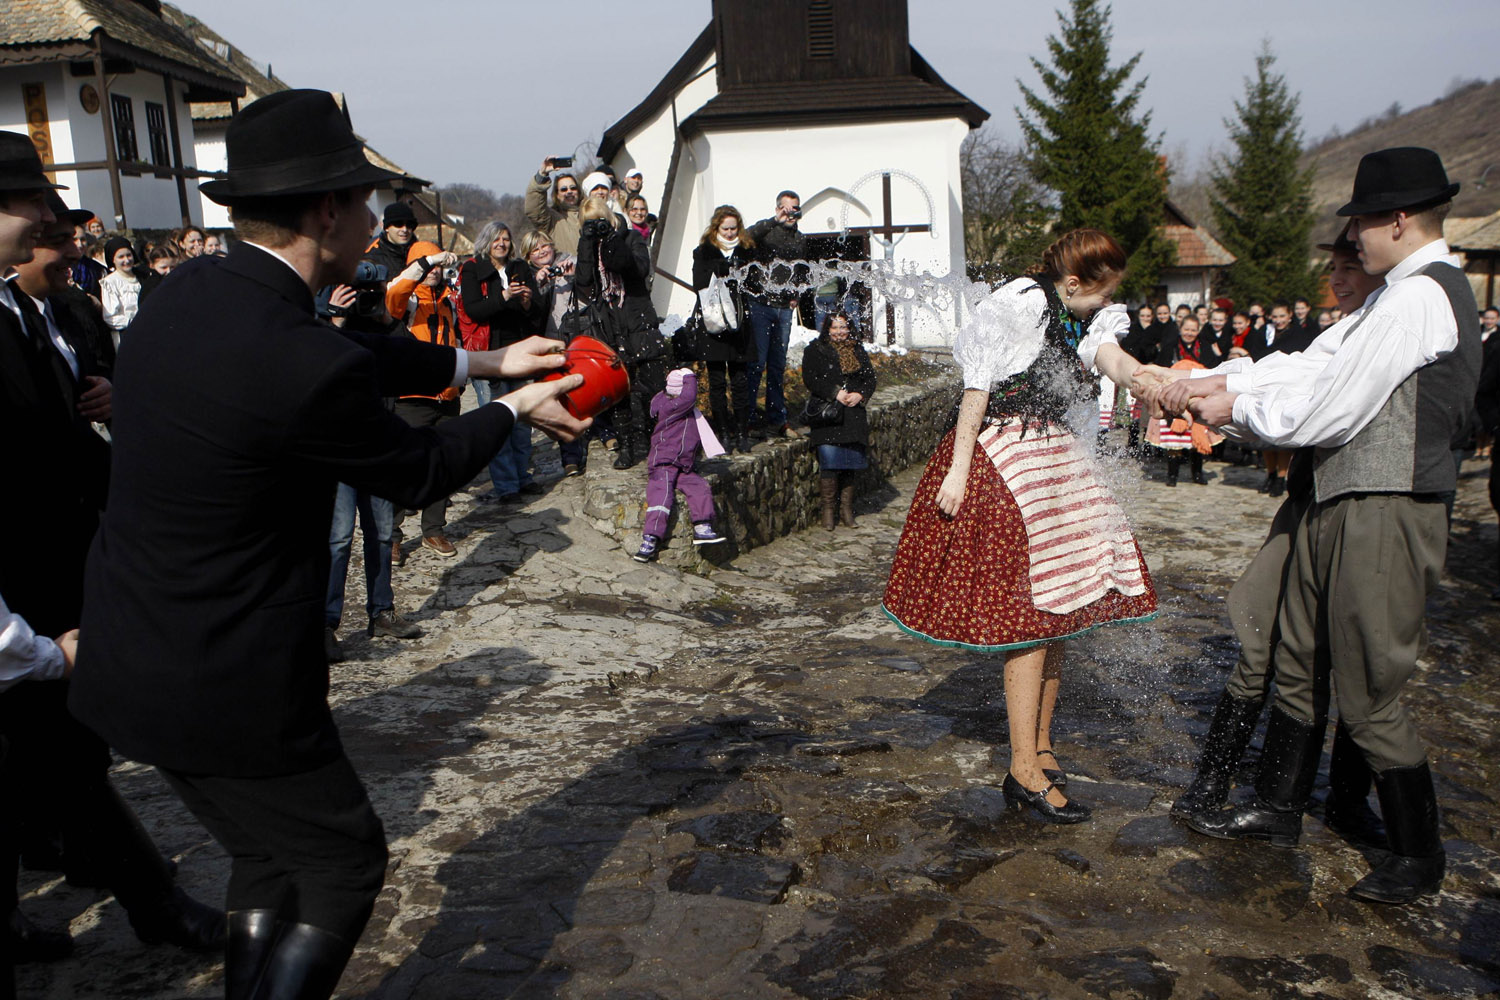 April 1, 2013. A man throws water on a woman as part of traditional Easter celebrations in Holloko, 100 km (62 miles) east of Budapest.